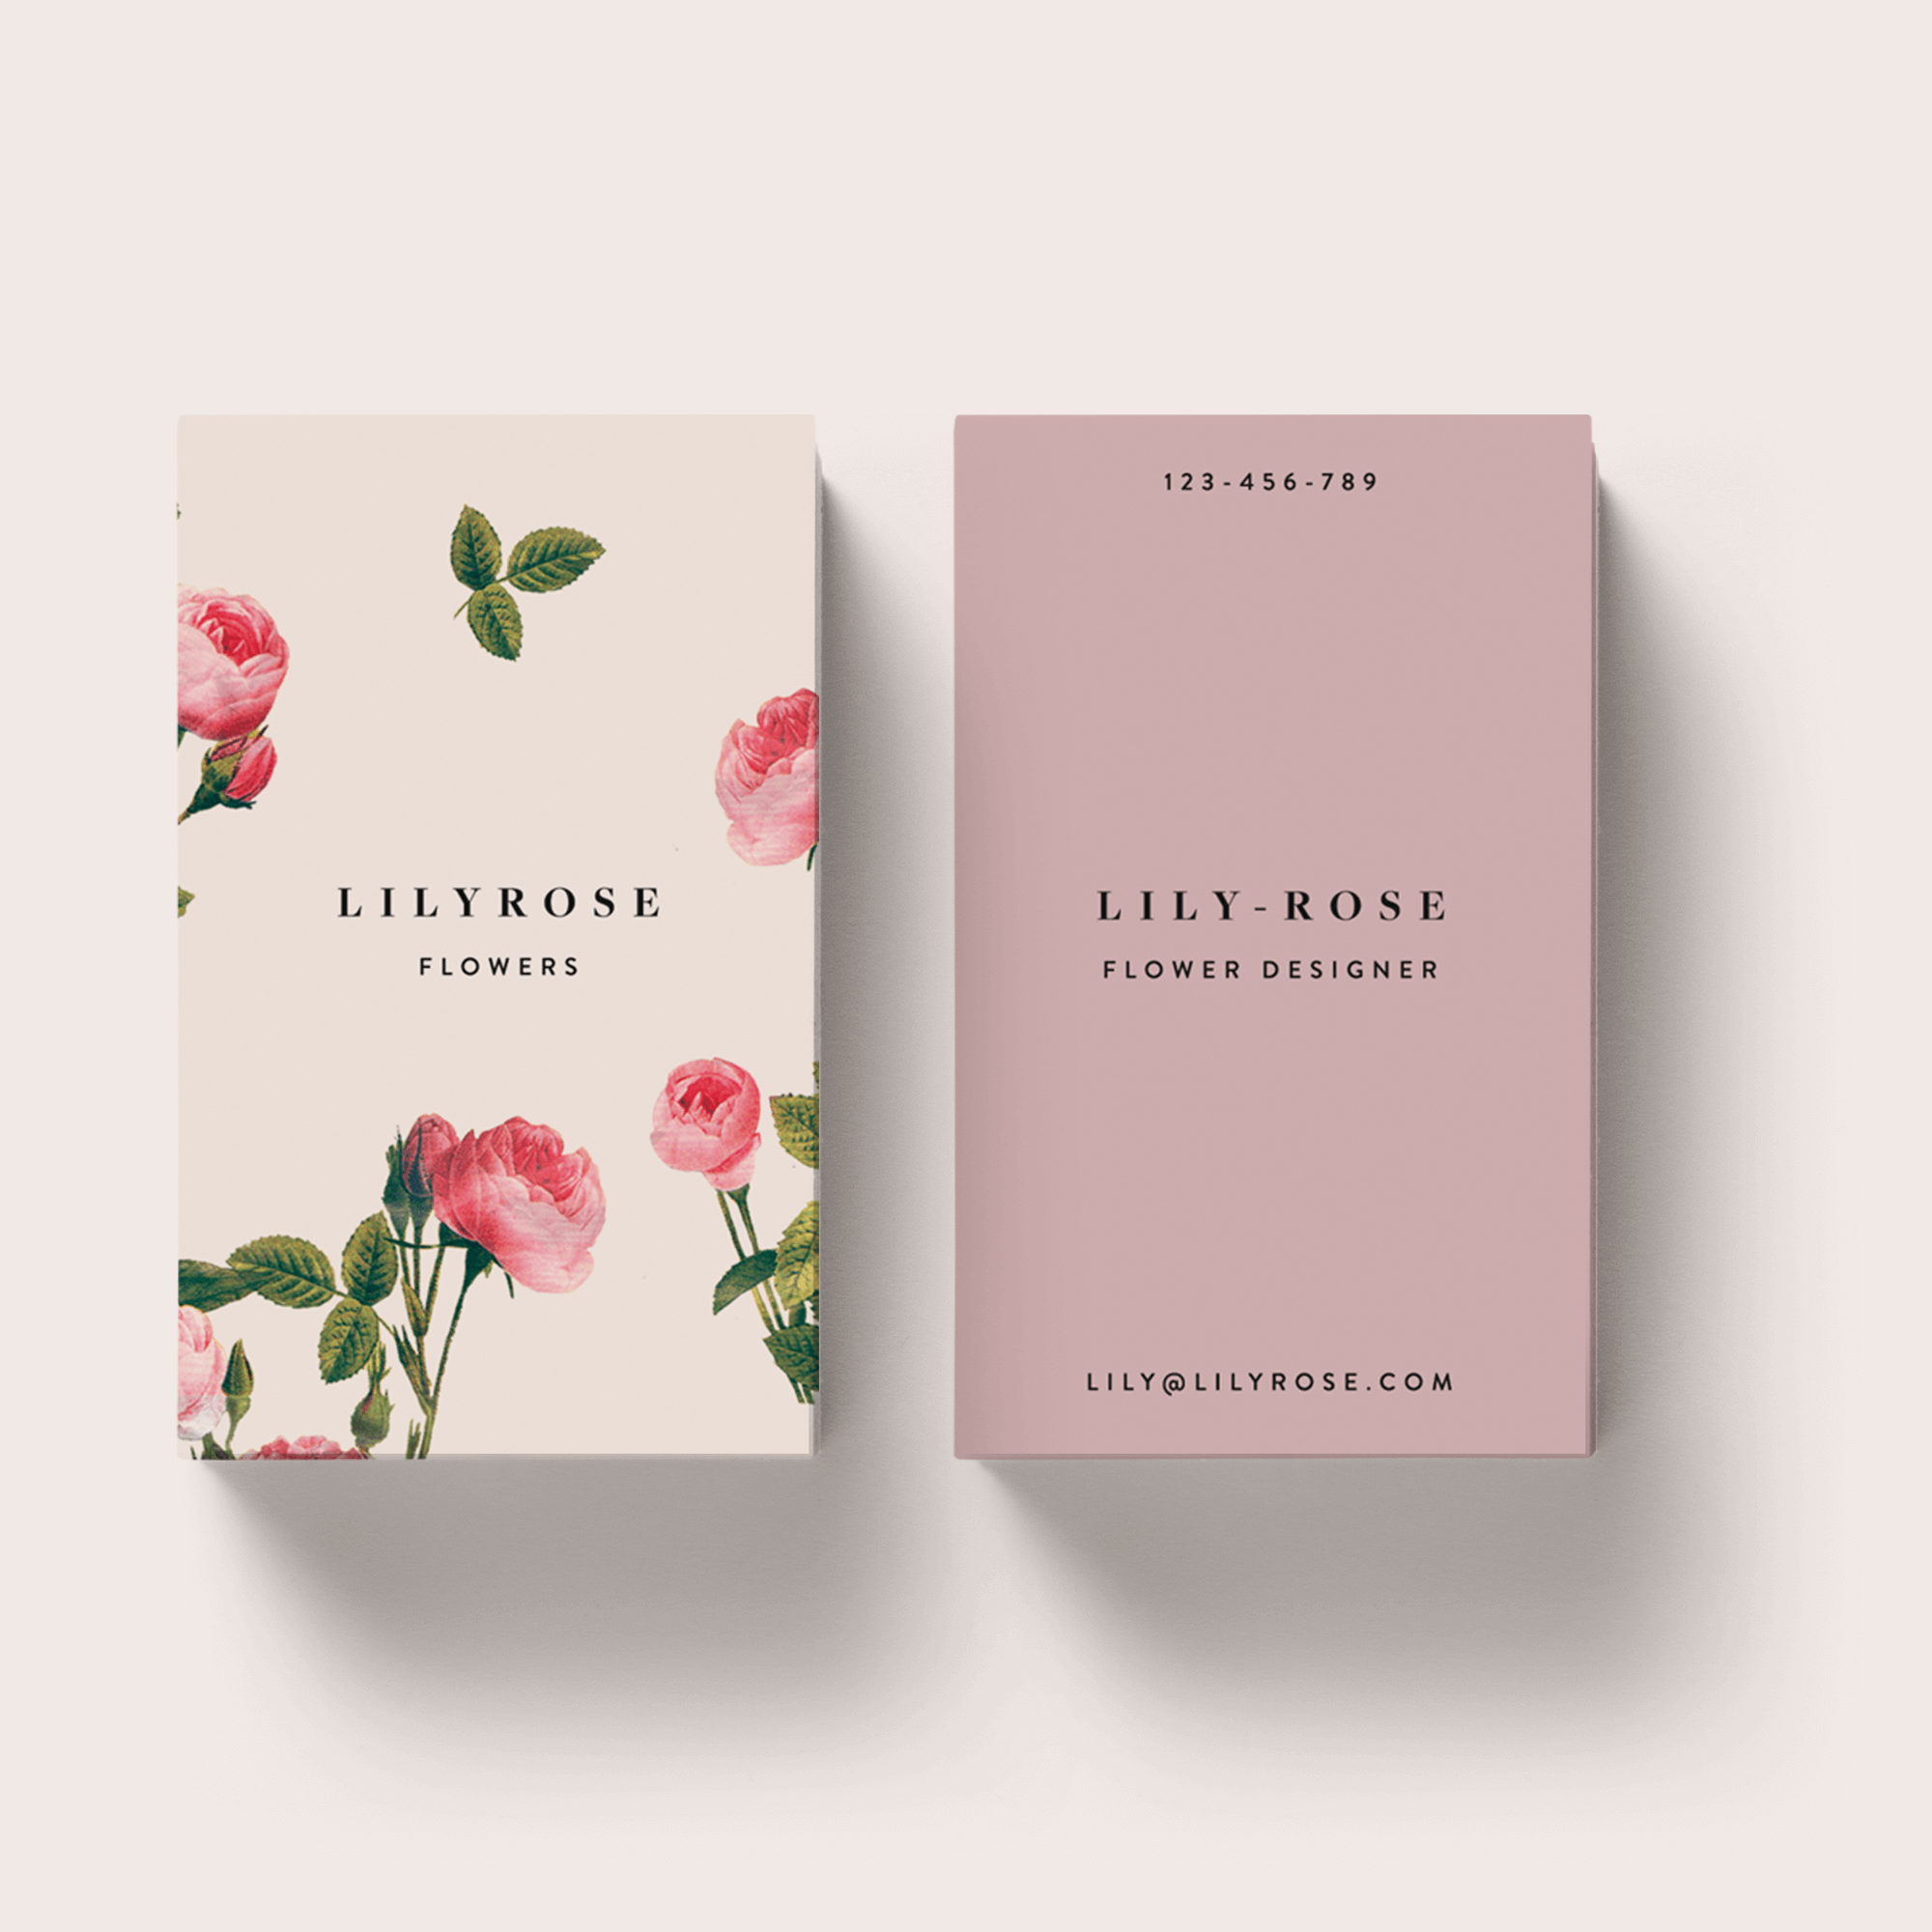 lilyrose-busienss-card-design-template-loolaa-designs.png